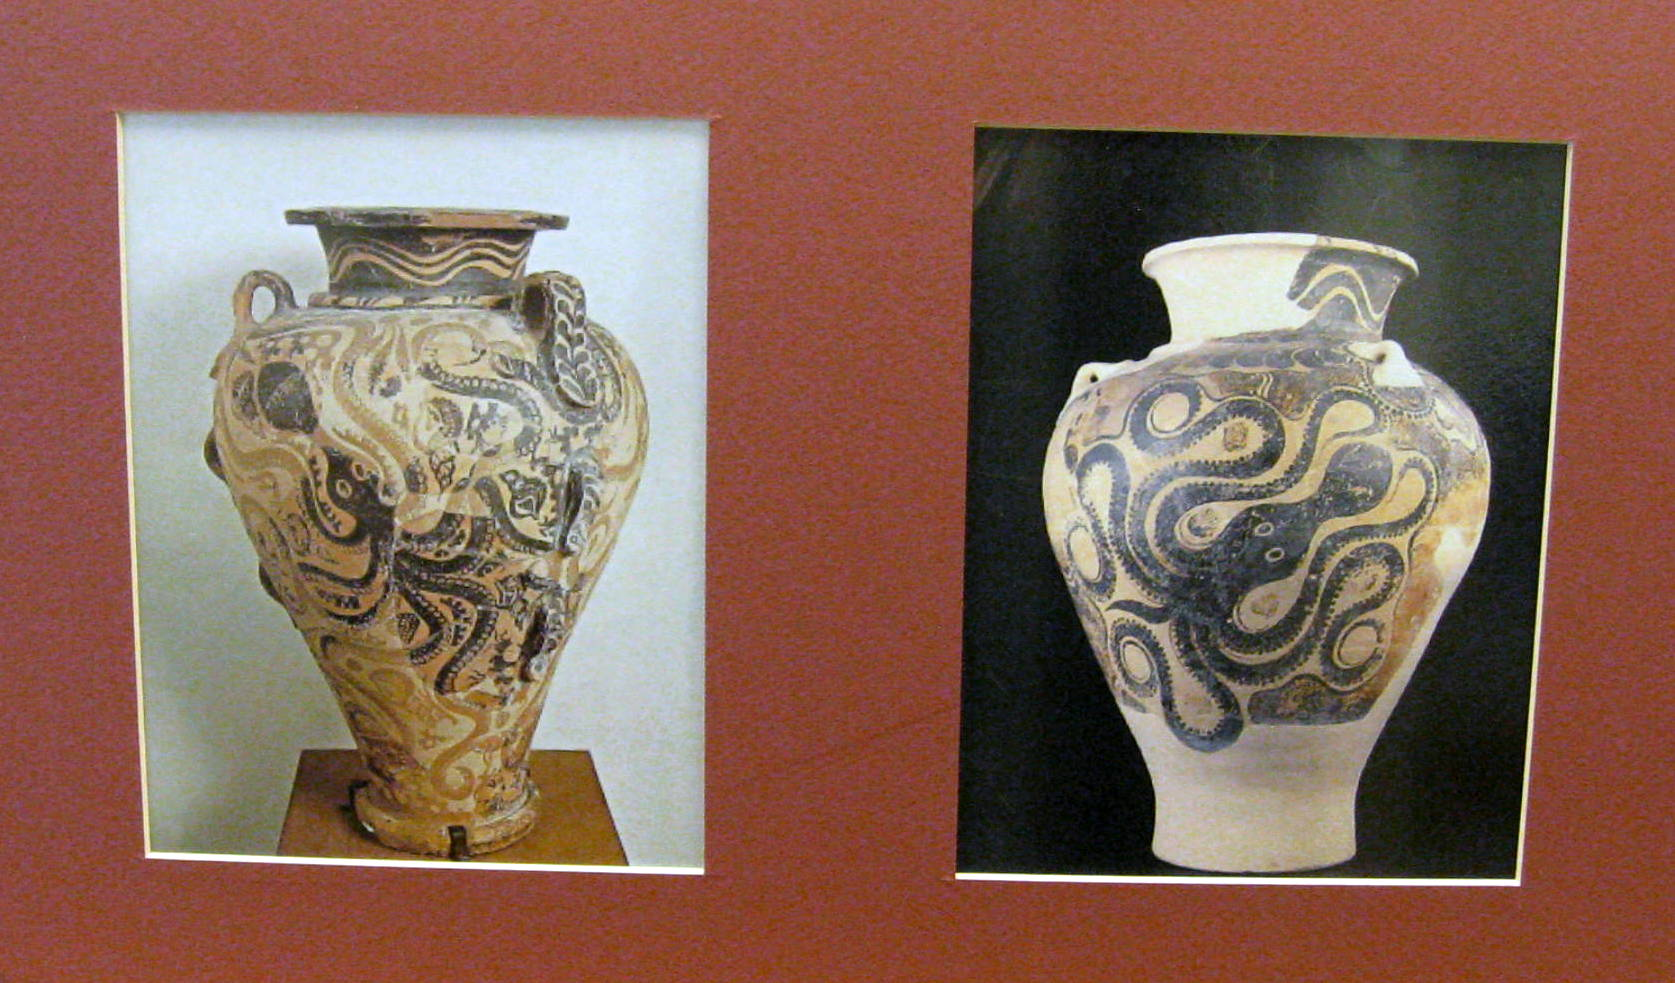 Packet 6 minoan art evergreen art discovery octopus pottery reviewsmspy